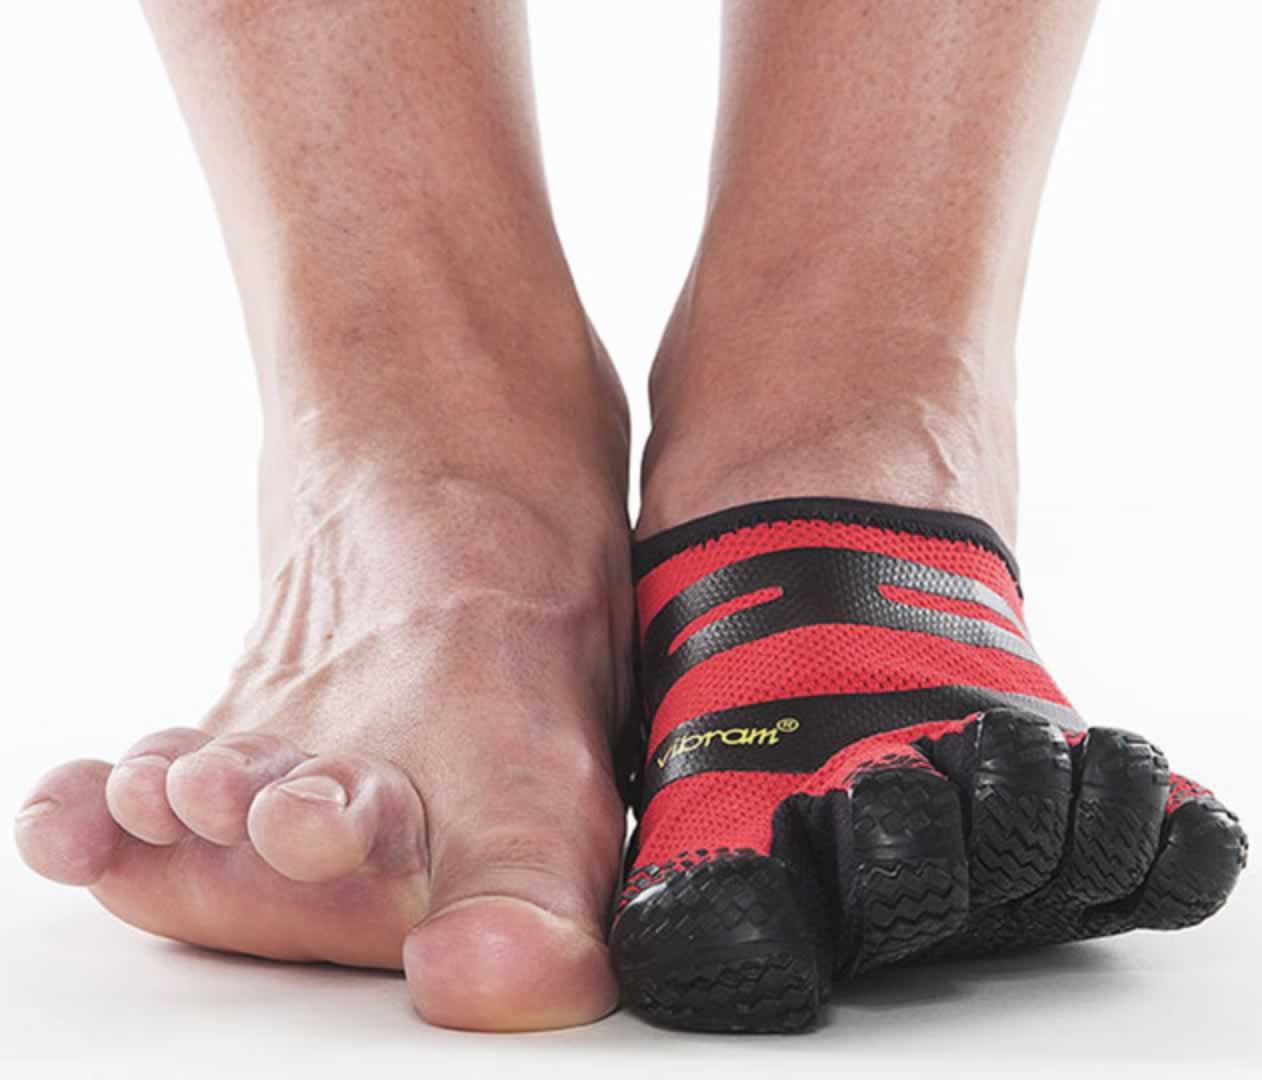 Product Review: Vibram FiveFinger Flow